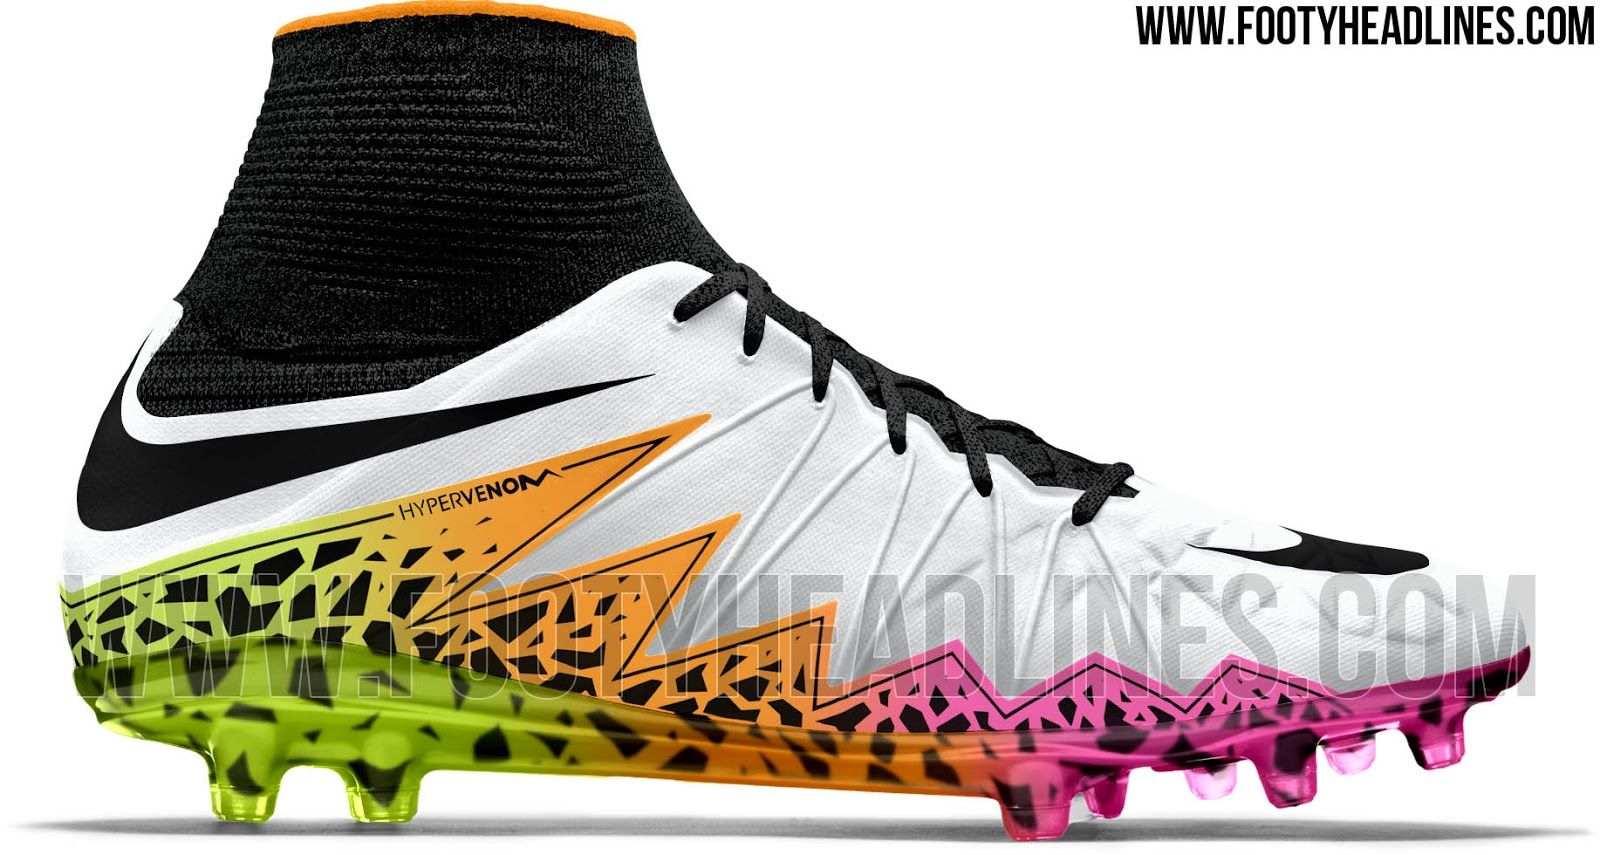 huge selection of f52c9 3c486 Set to be released in April 2016, players such as Robert Lewandowski will  headline the bold Nike Hypervenom Phantom II 2016 football boots.